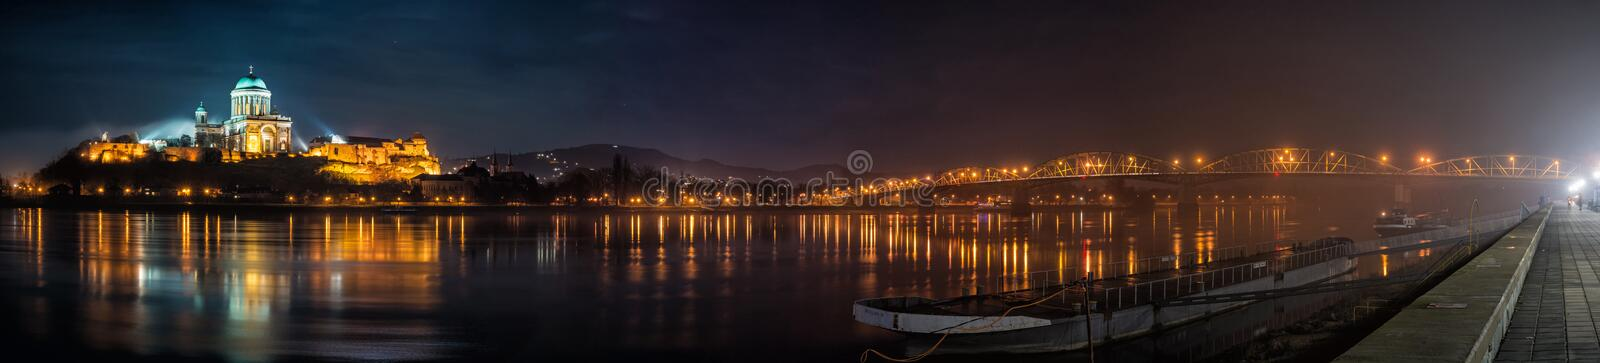 Esztergom basilica and Maria Valeria bridge, Hungary stock photos